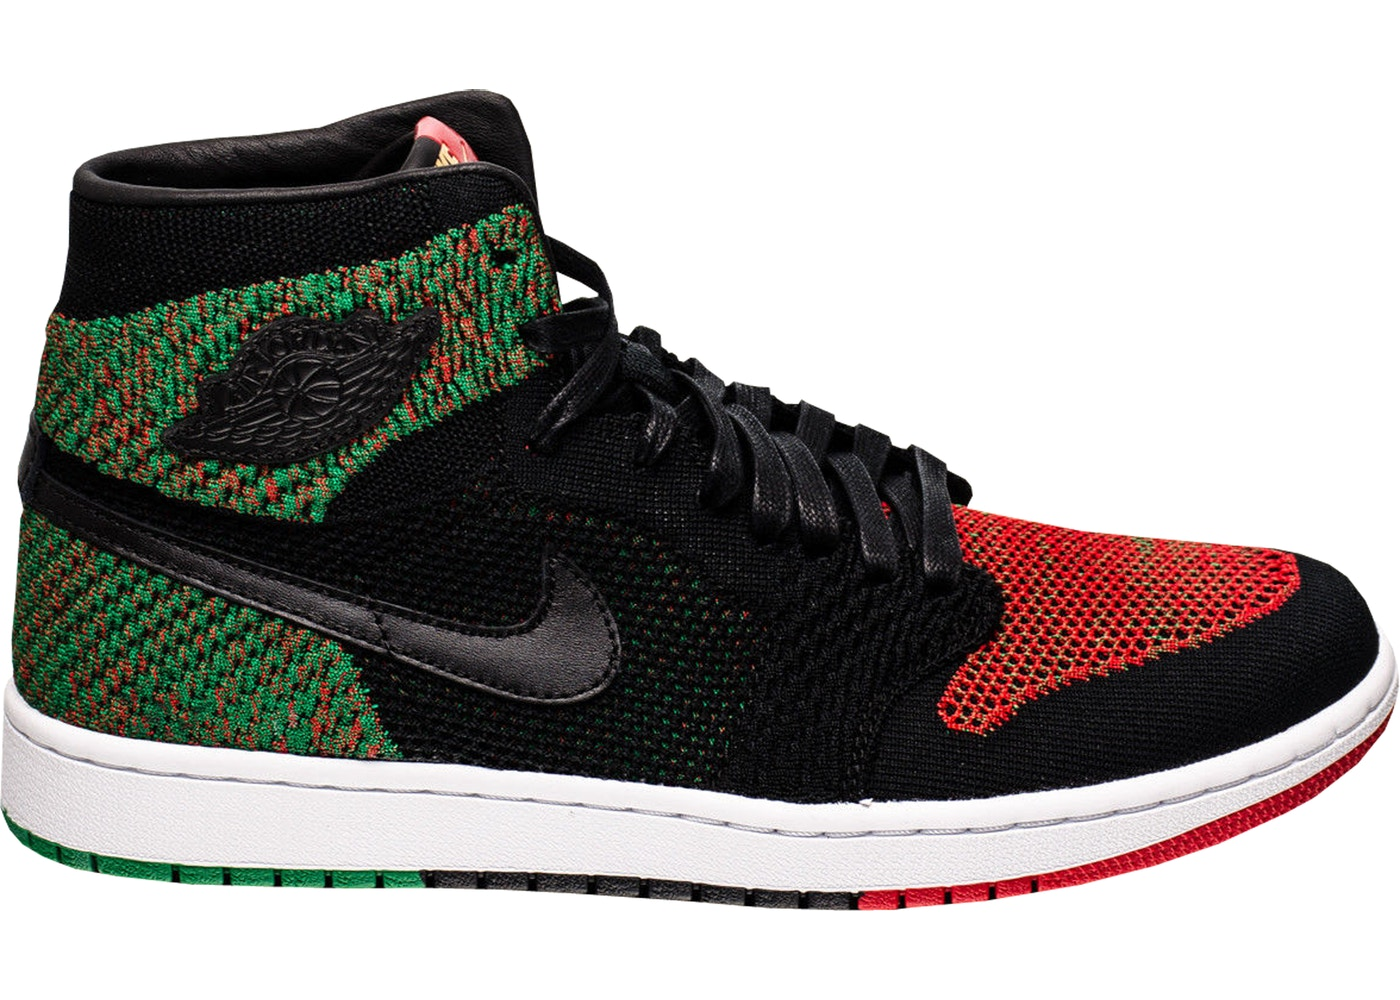 Jordan 1 Retro High Flyknit Black History Month (2018) - AA2426-026 95fd25474